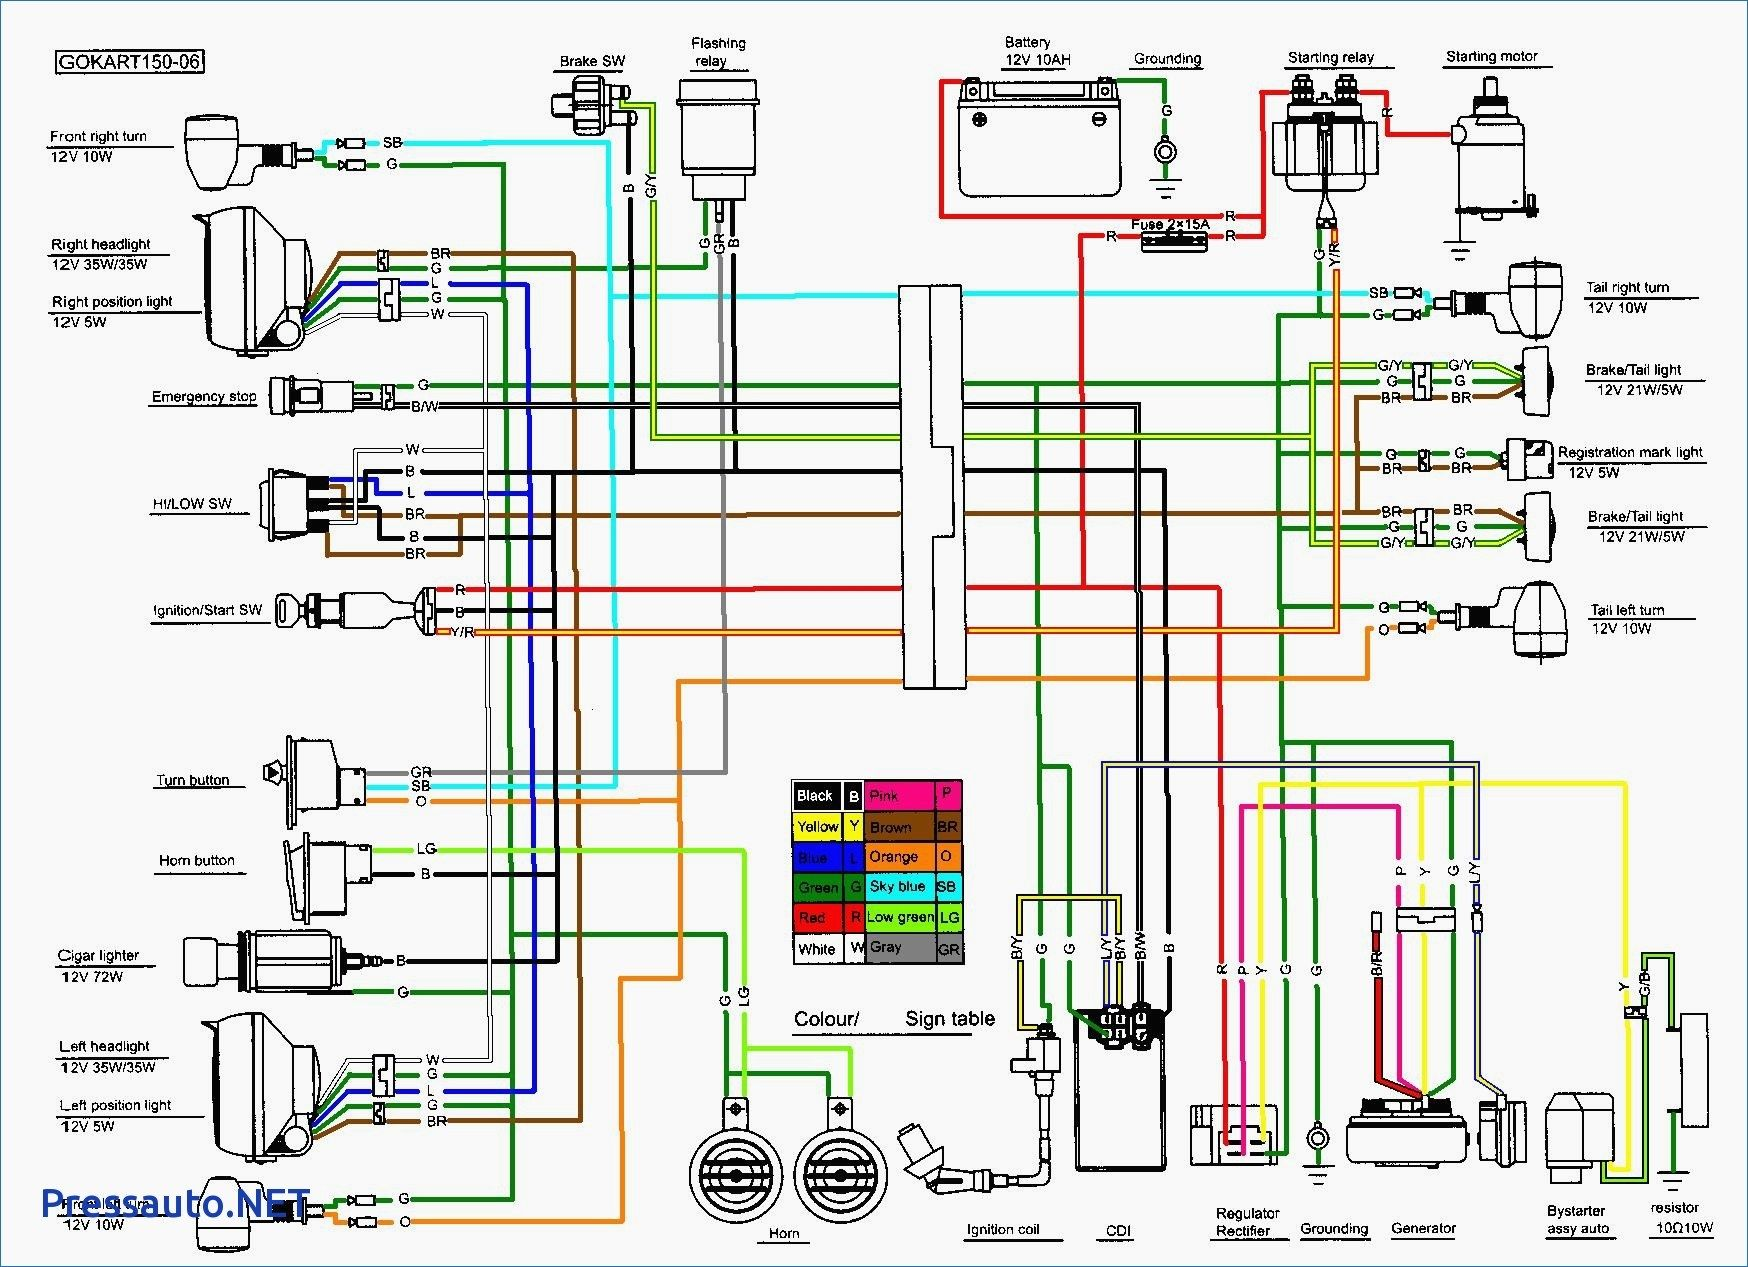 6 wire cdi wiring diagram dolgular com best of diagrama honda rh pinterest co uk [ 1748 x 1267 Pixel ]